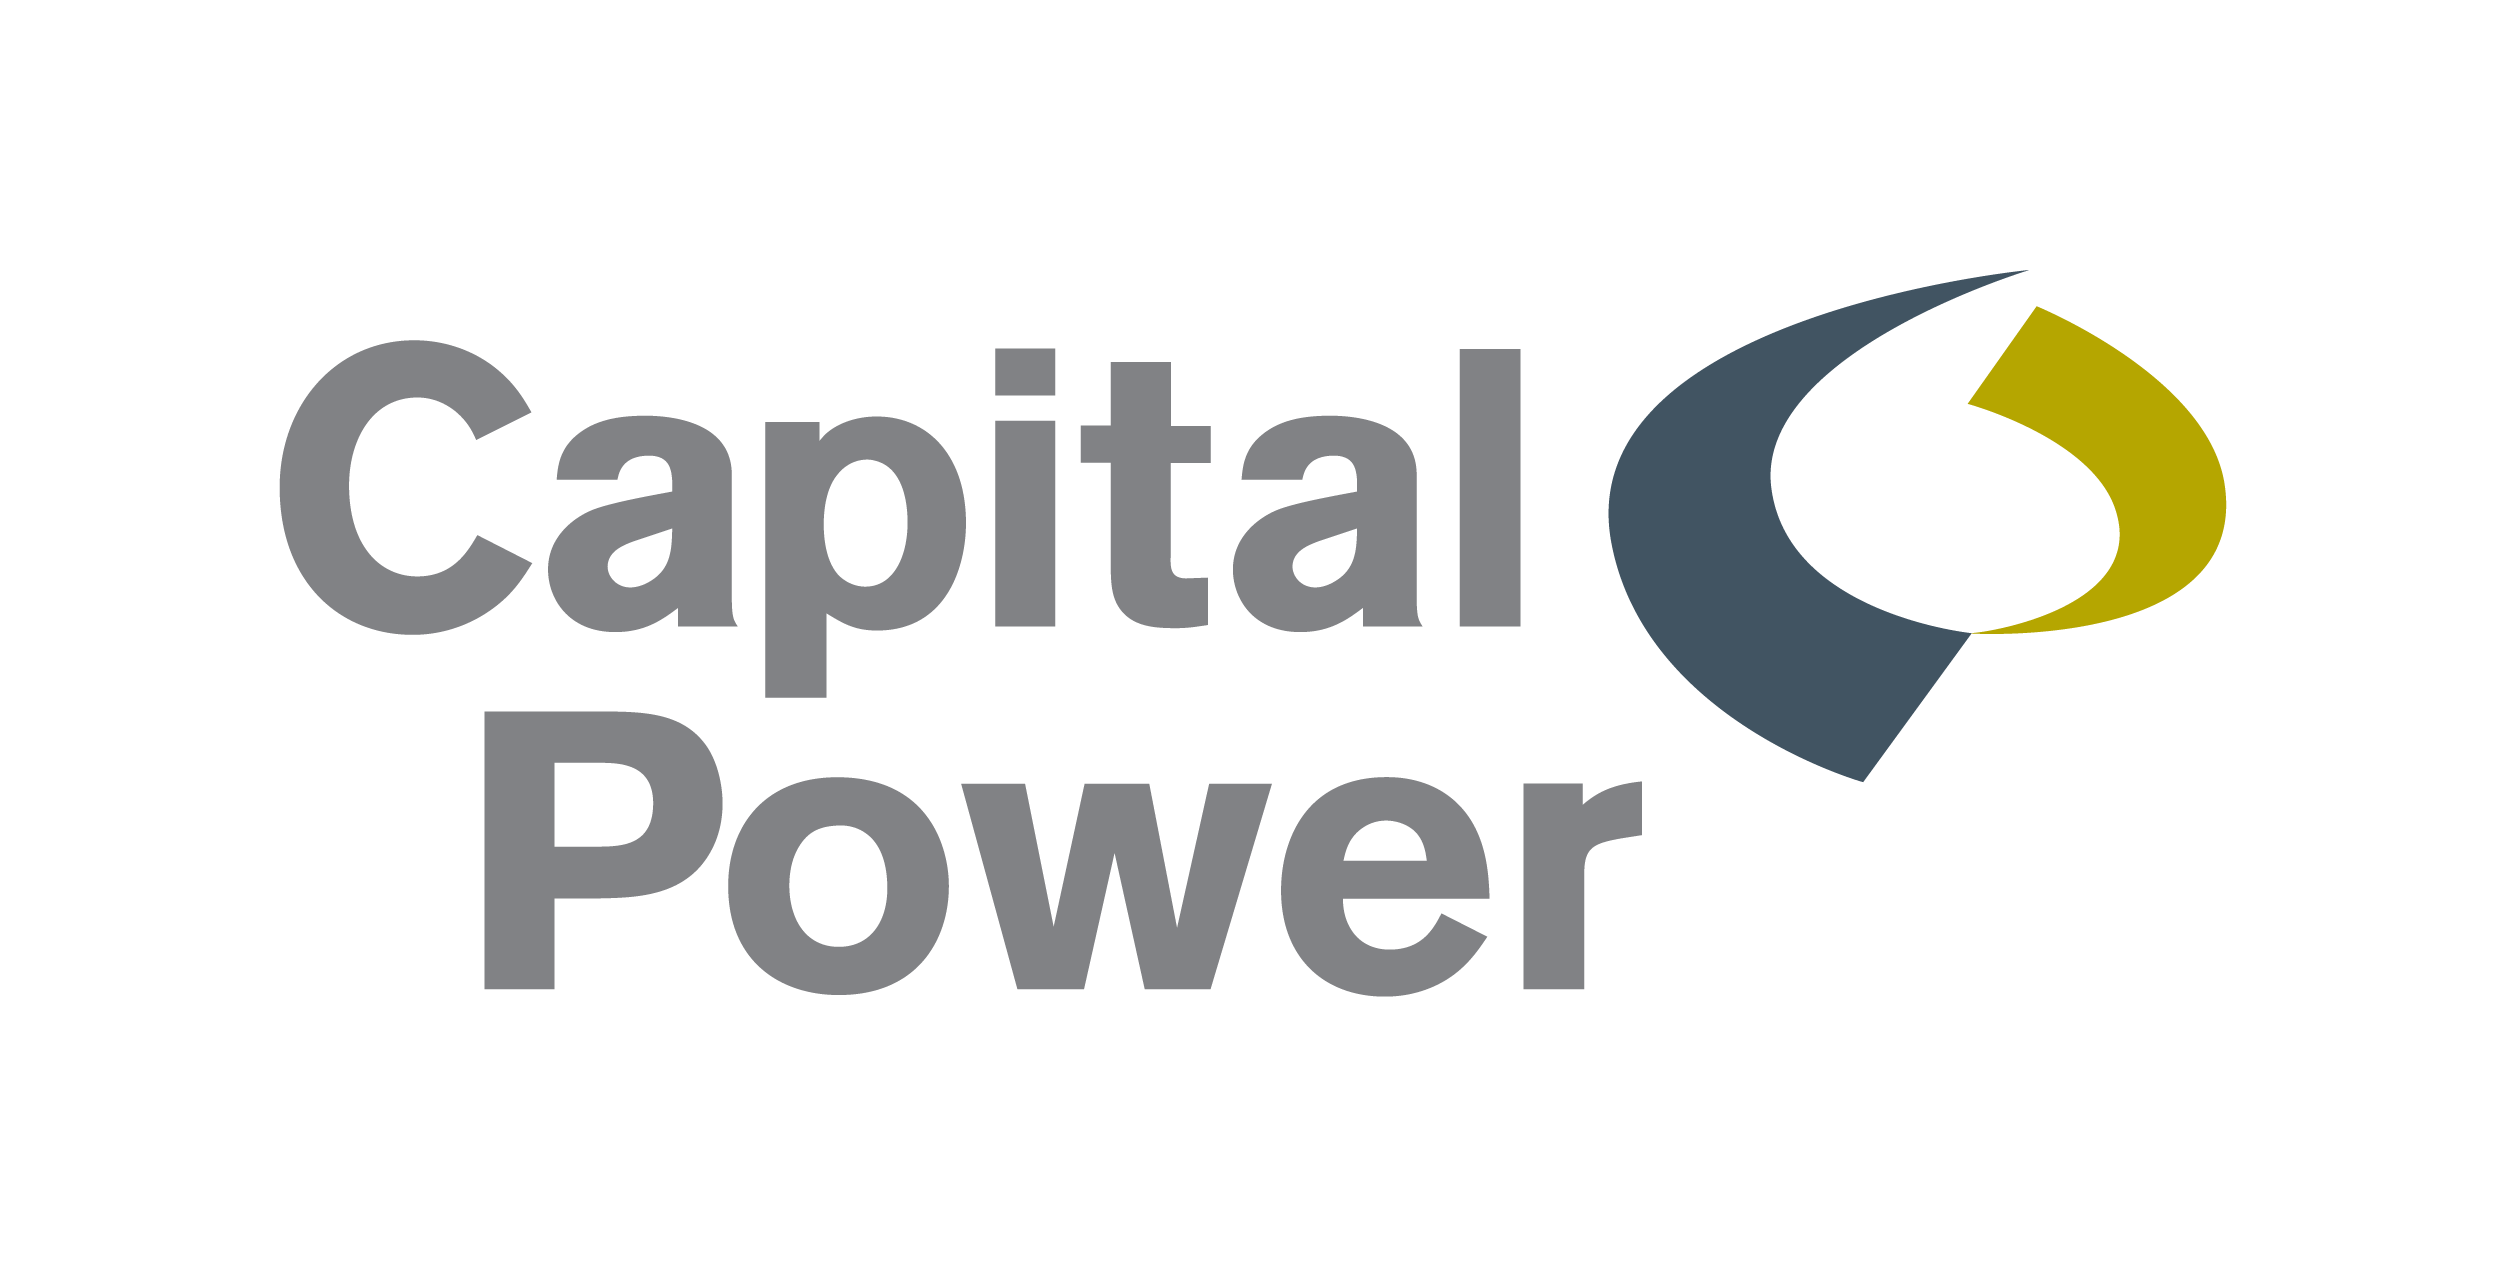 Capital Power CMYK logo 2500x1200 - transparent bg